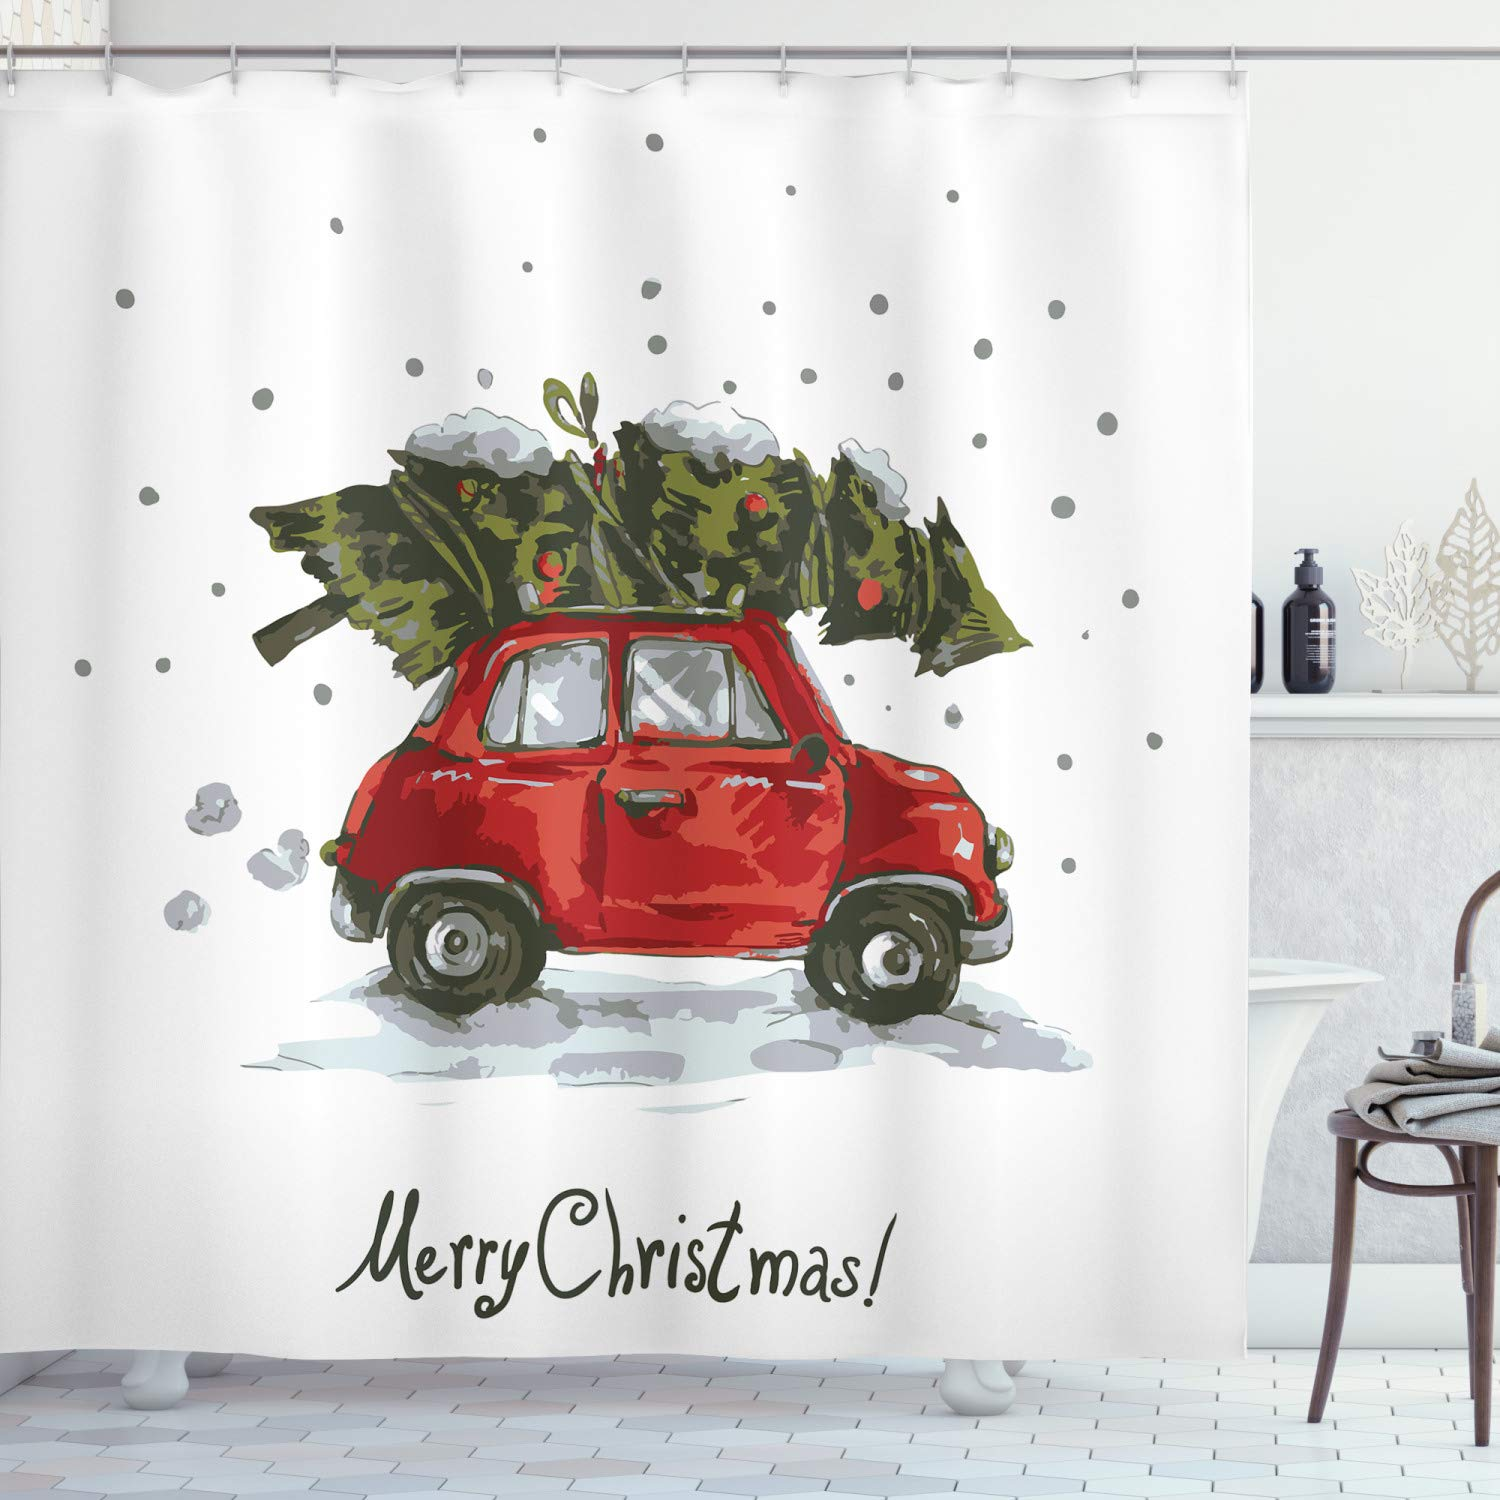 Ambesonne Christmas Shower Curtain, Red Retro Style Car Xmas Tree Vintage Family Style Illustration Snowy Winter Art, Fabric Bathroom Decor Set with Hooks, 70 Inches, Red Green